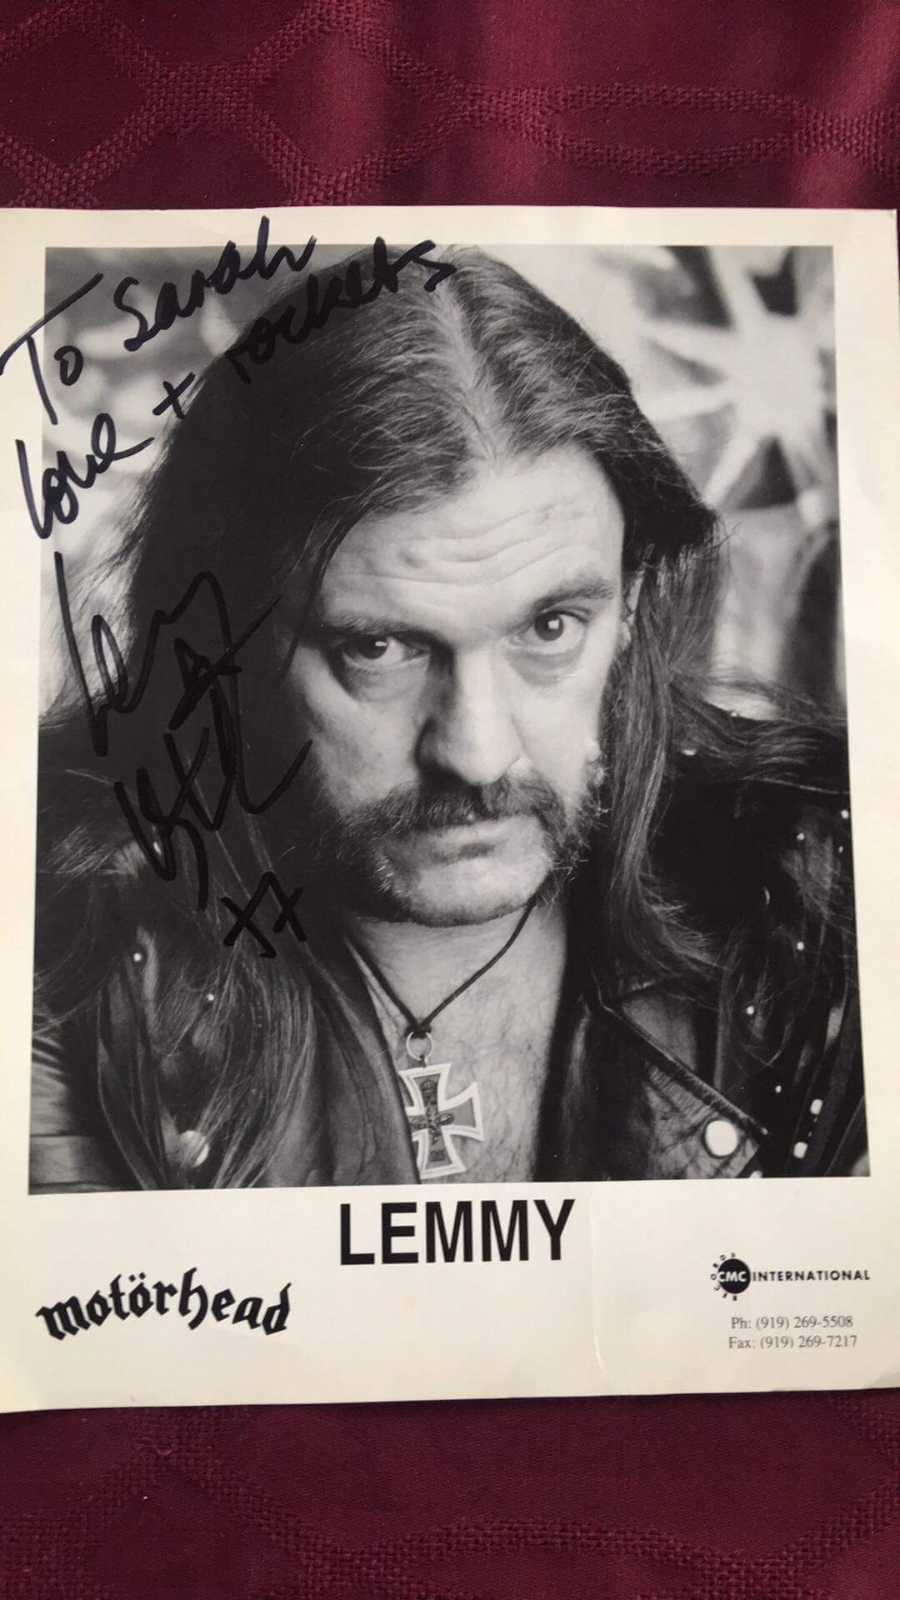 Lemmy's Autographed Photo - Some dude that probably bought a storage locker unit at auction started pulling a bunch of crap out of his U-Haul when this gem literally flew out of a box thanks to a gust of wind. Thanks Sarah!Paid $1